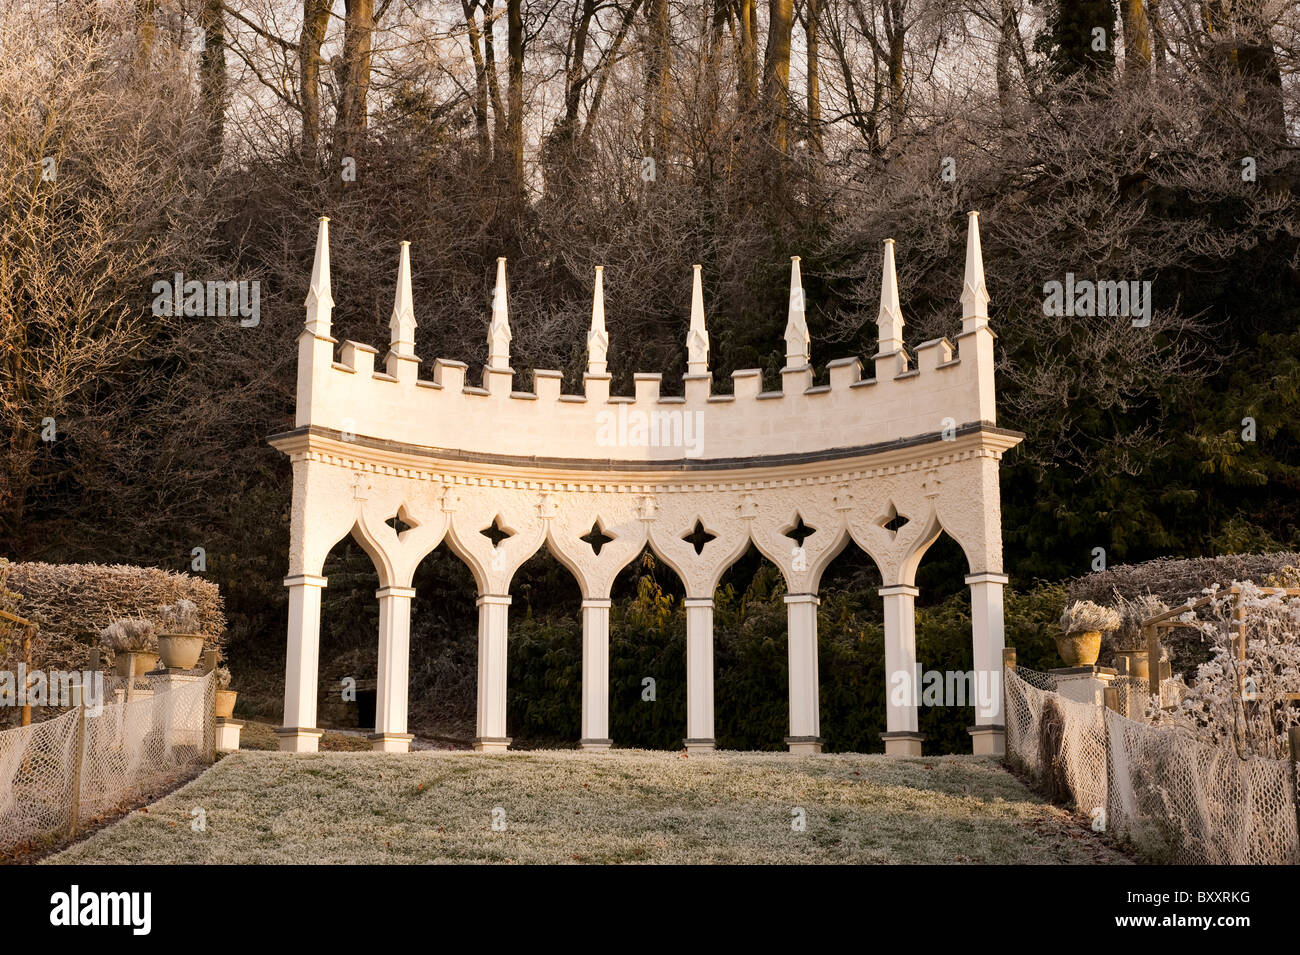 Exedra at Painswick Rococo Garden in the winter, Gloucestershire, England, United Kingdom - Stock Image